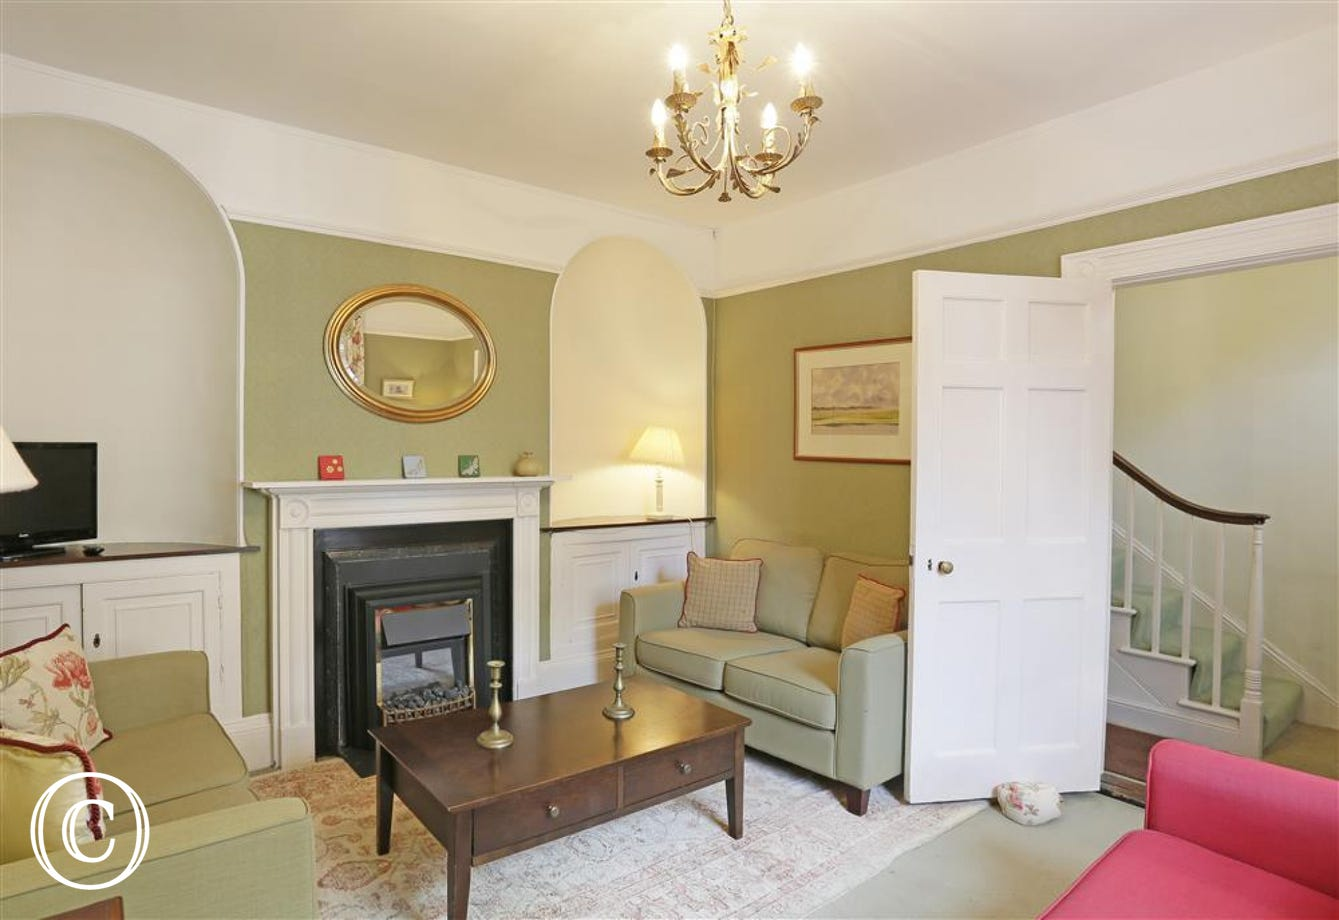 Take in the pretty features of this prime location property with its arched alcoves and rustic lights.